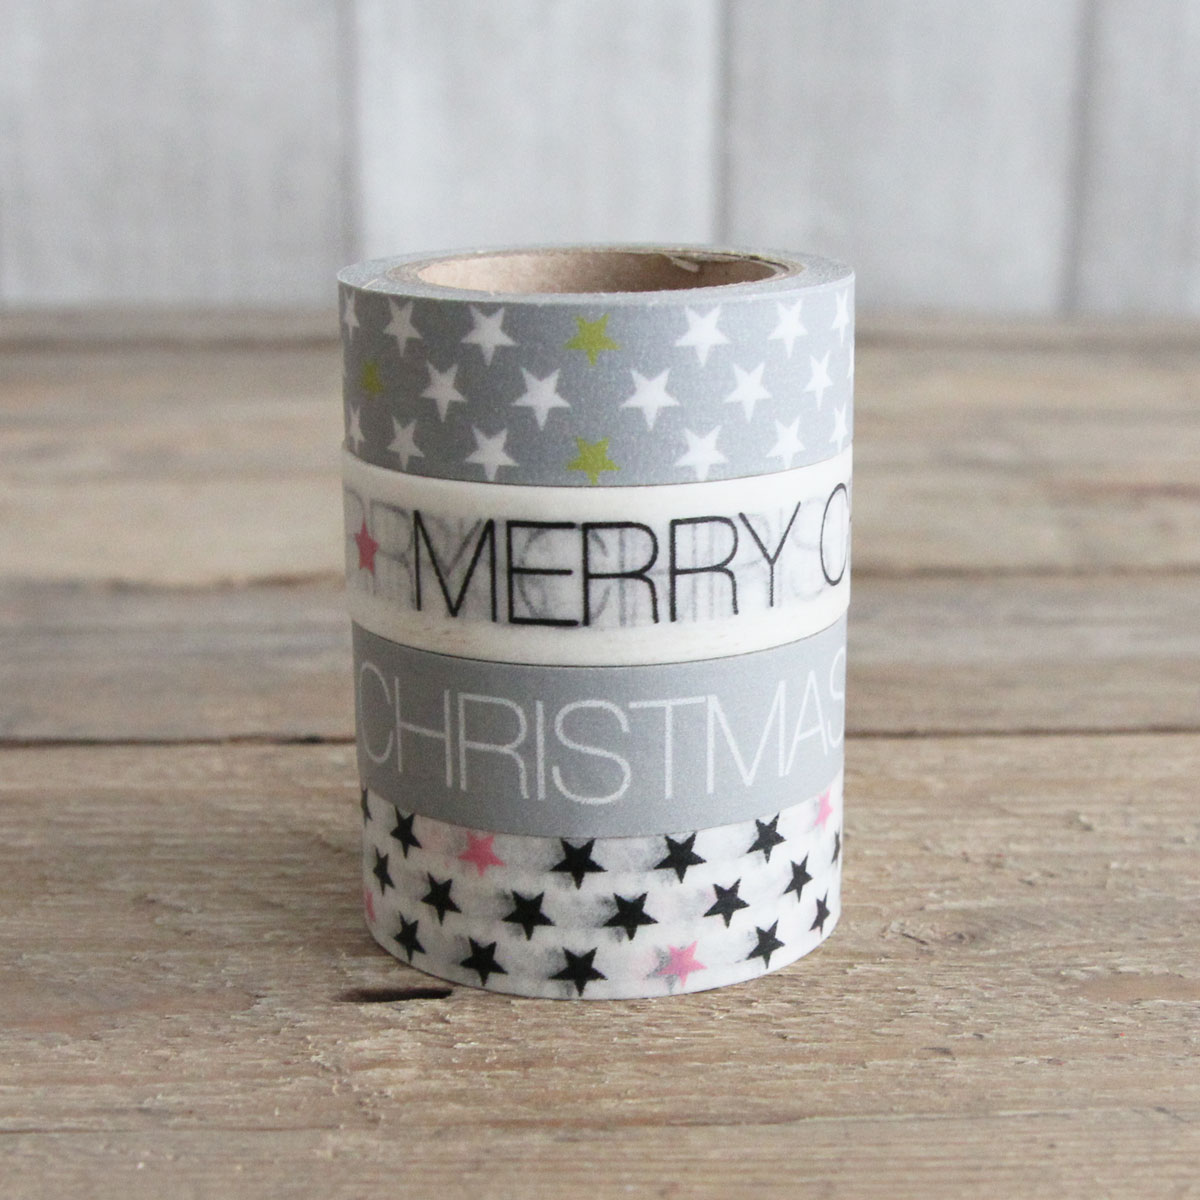 Mr_wonderful_shop_decoracion_navidad_2014_092